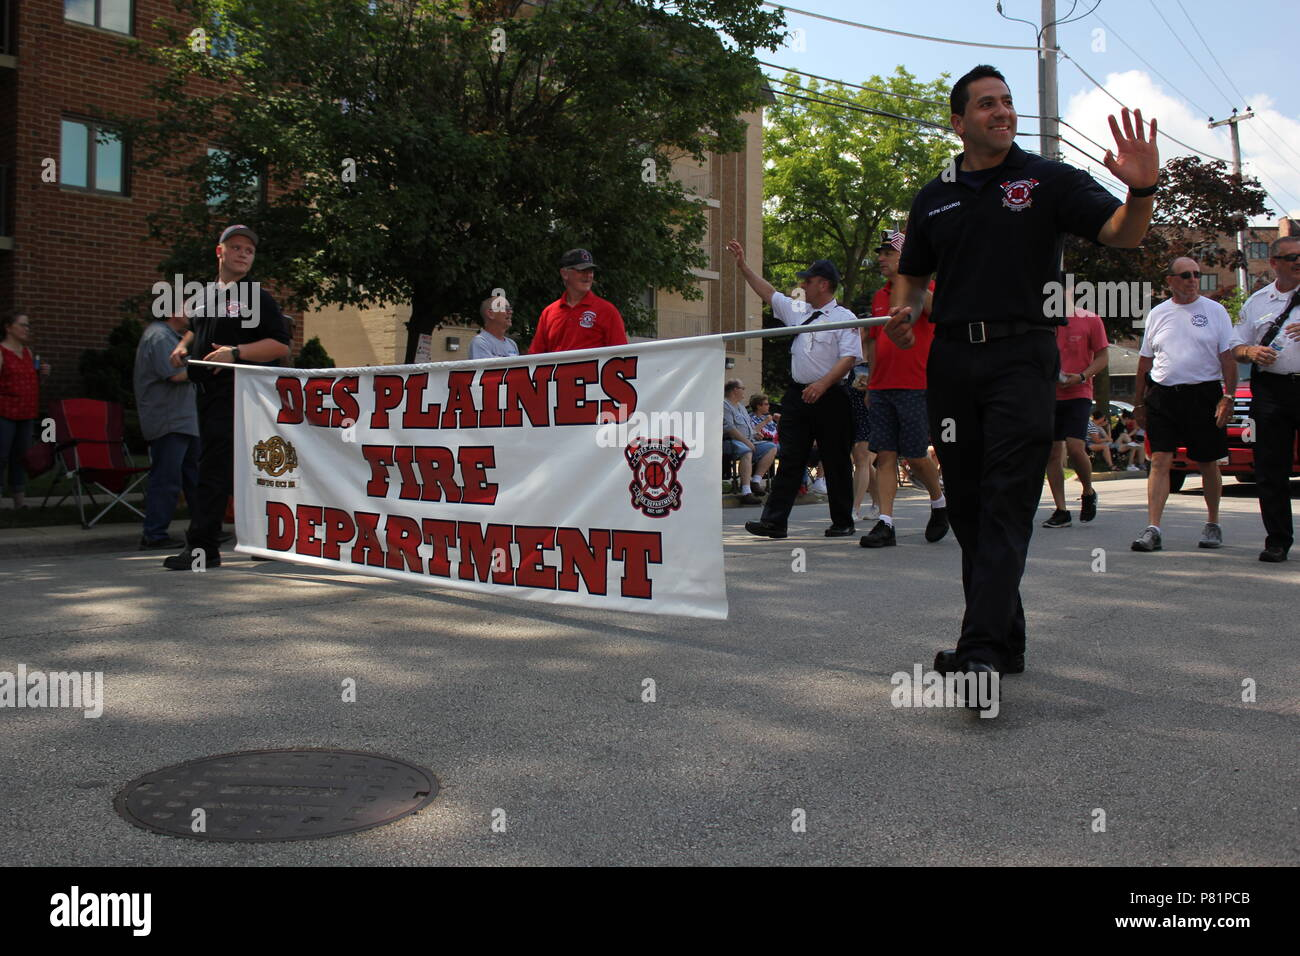 Des Plaines Fire Department parading in the Fourth of July Parade in Des Plaines, Illinois. - Stock Image